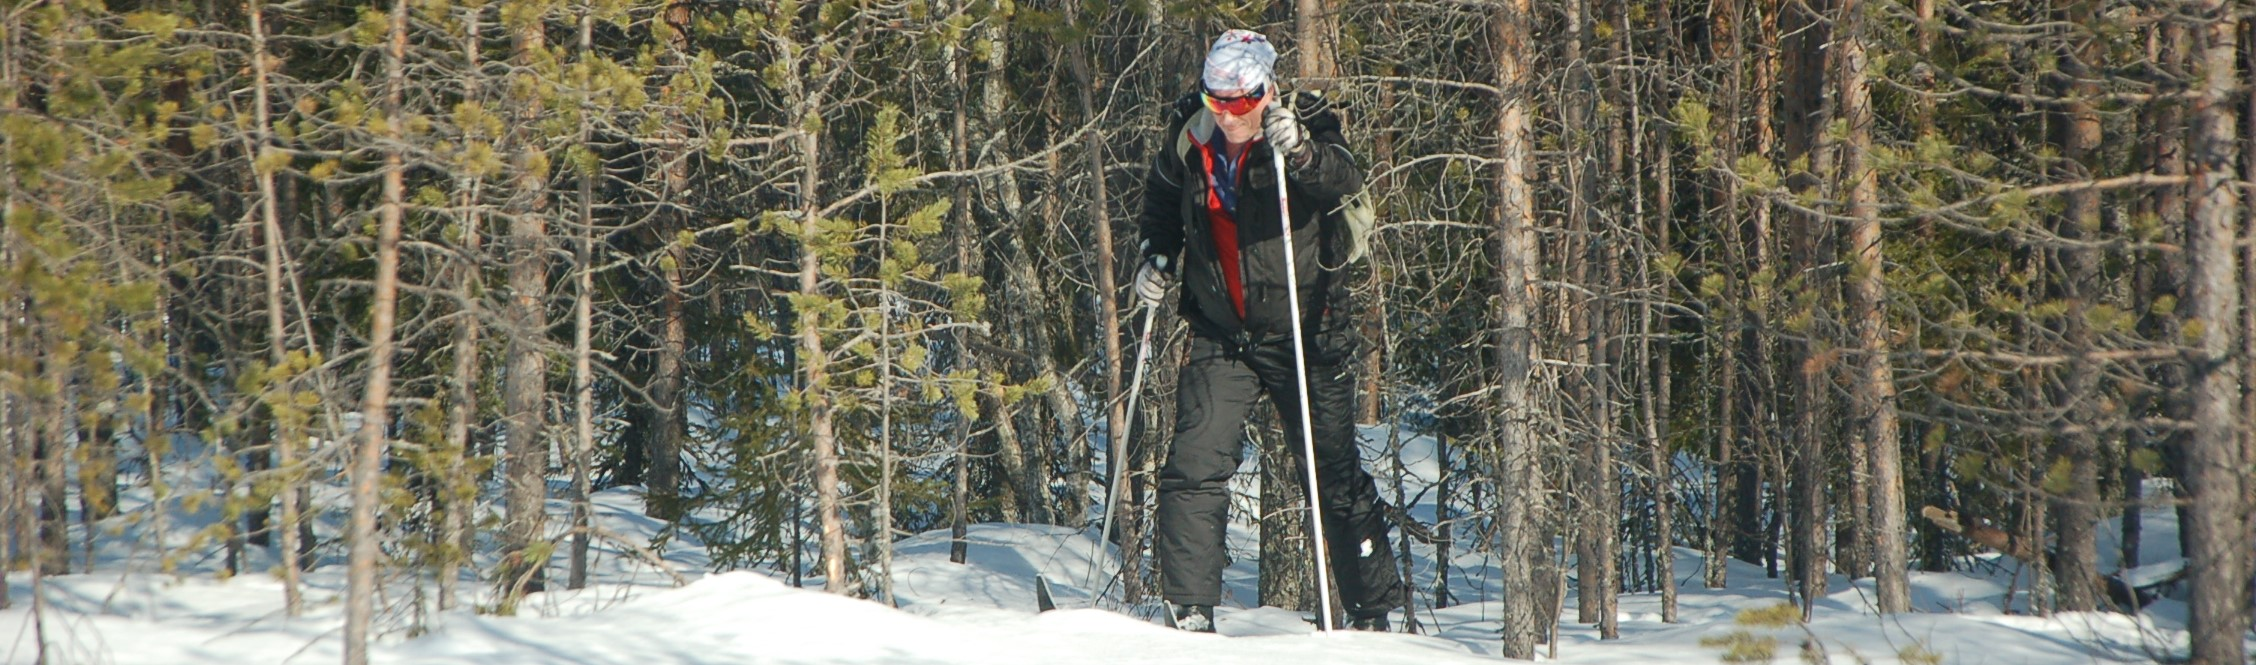 A skier emerges from the Finnish forest